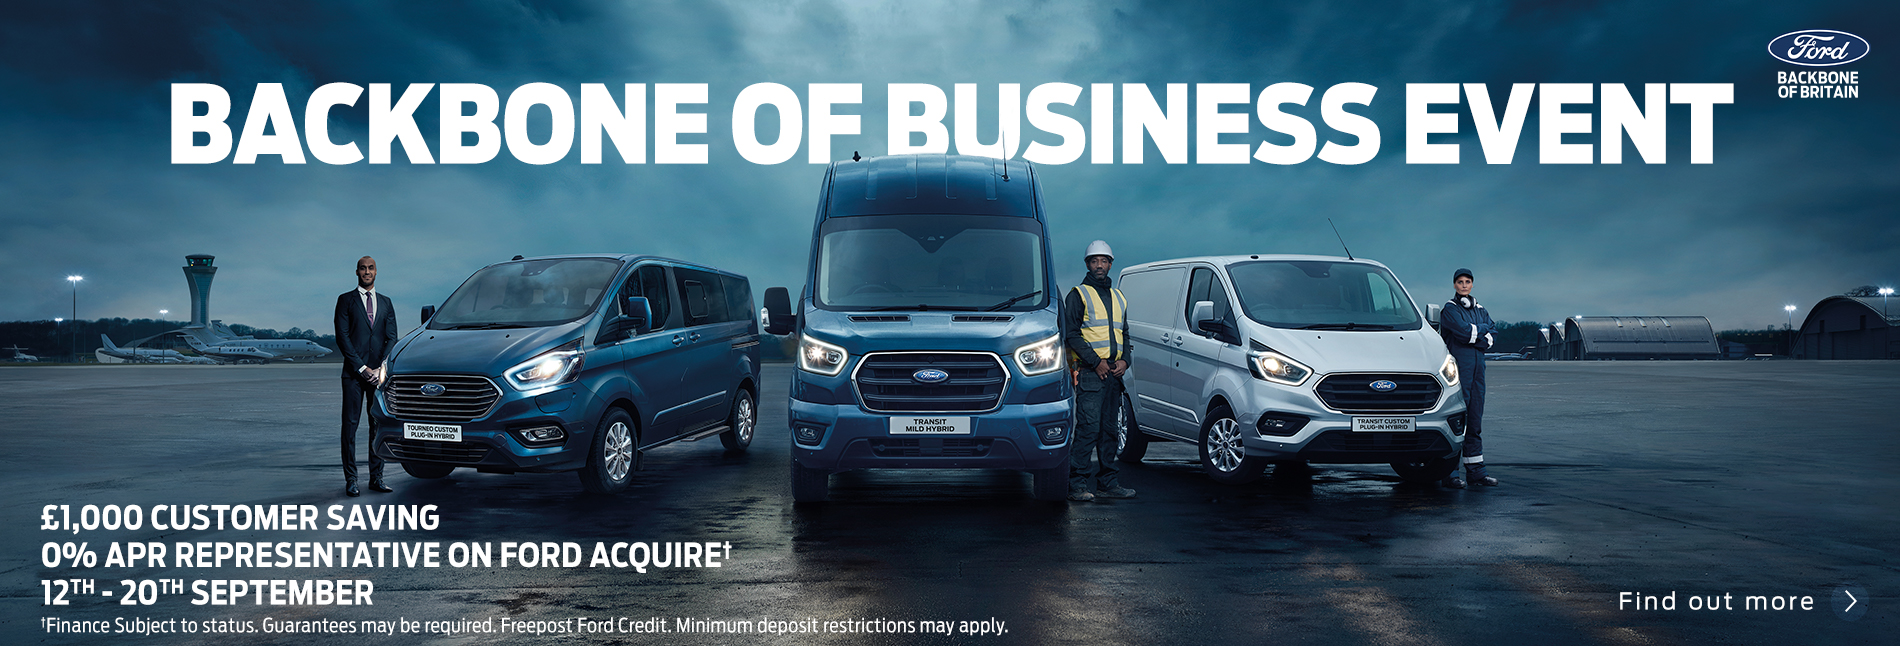 Ford Backbone of Business Event 2020